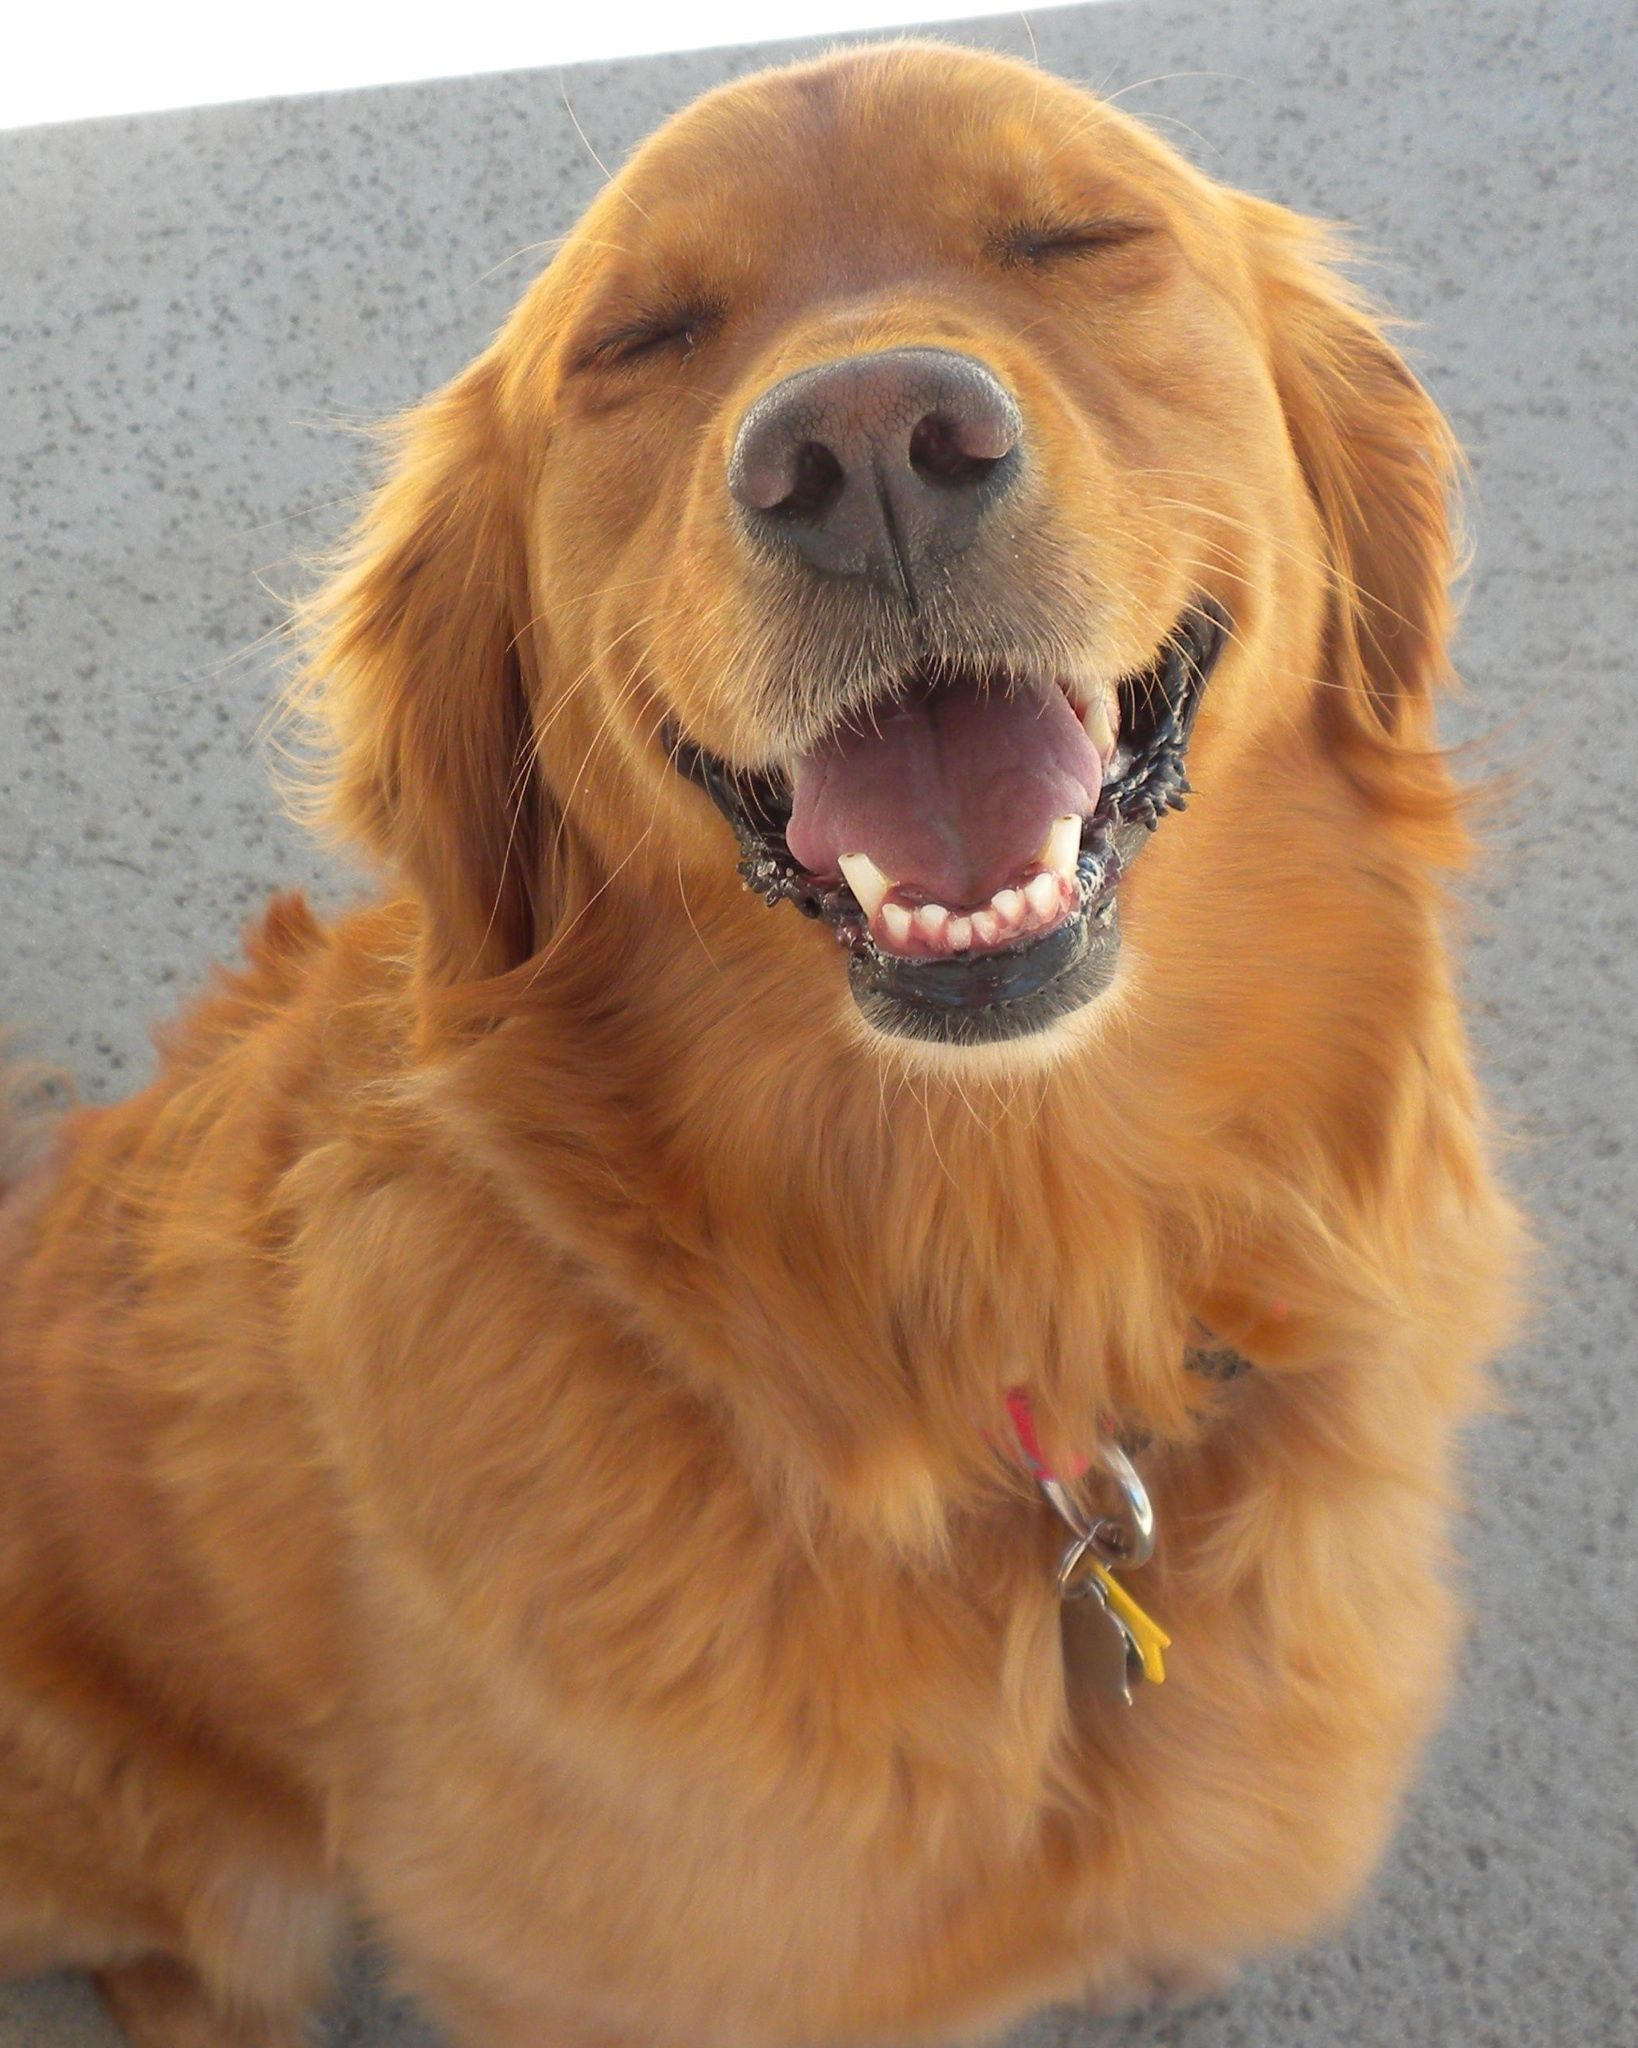 Golden S Have The Best Smiles And They Re So Happy All The Time Especially If You Add A Ball Or Squeak You To The Equation Golden Retriever Dogs Cute Dogs